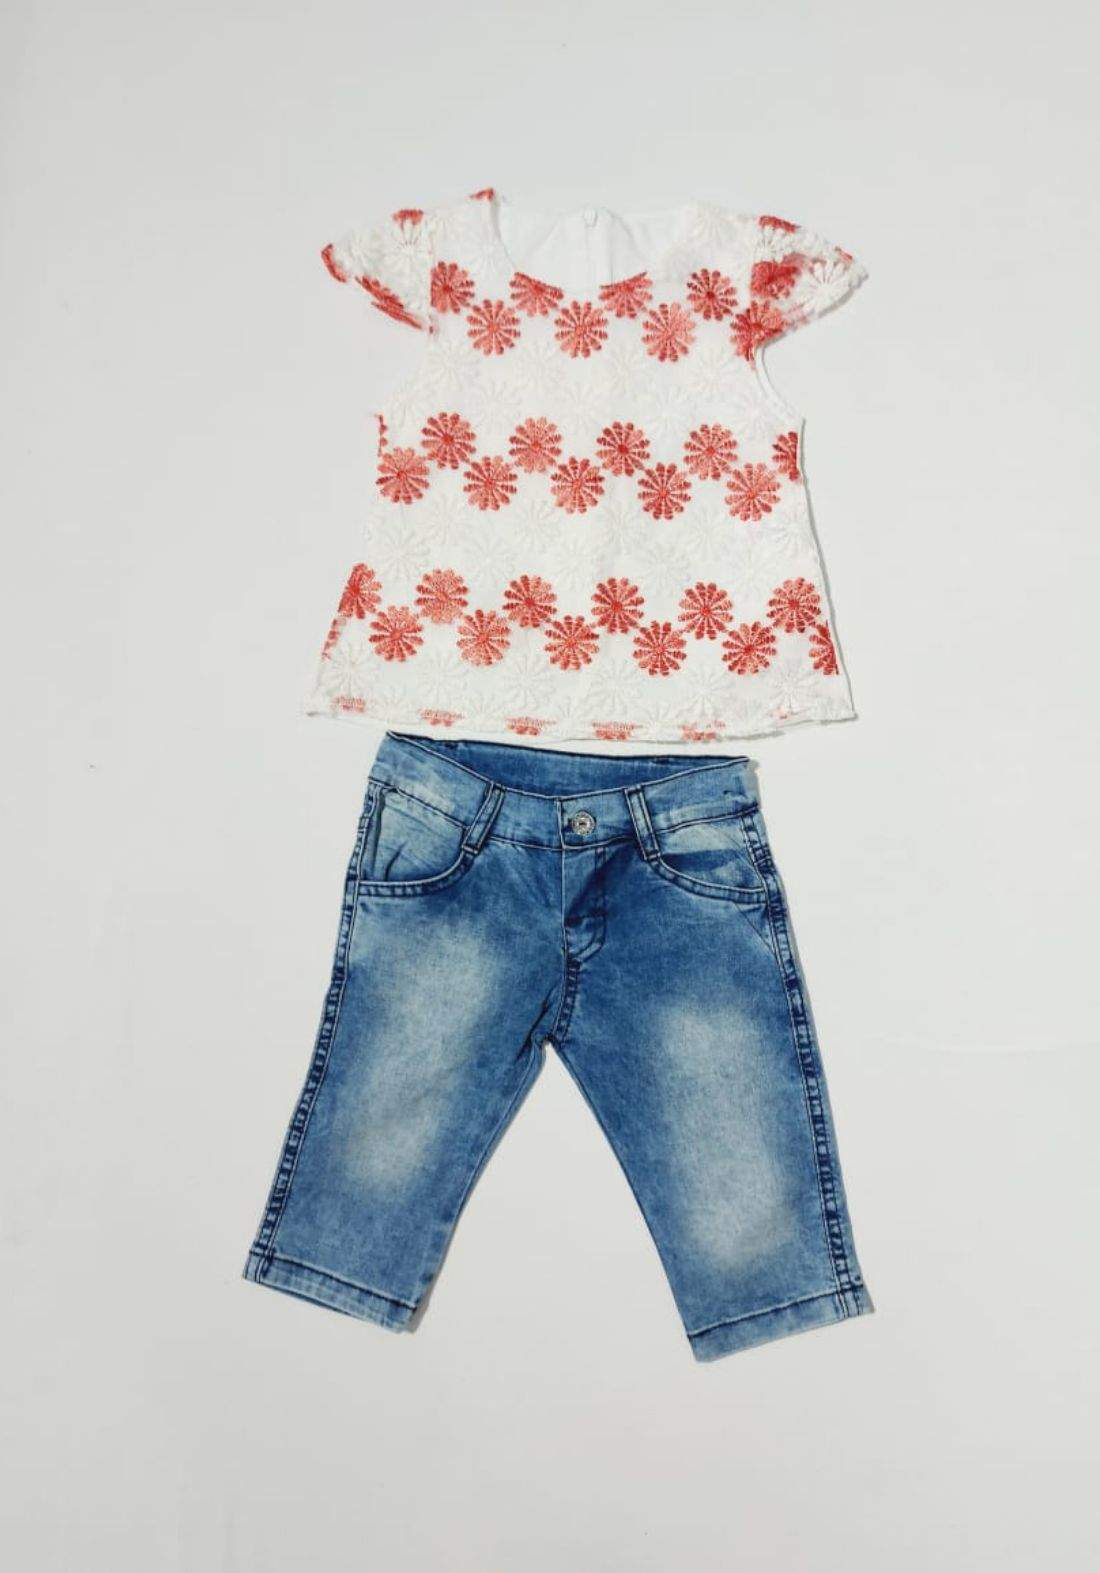 Girls' outfit (T-shirt and shorts) طقم بناتي (تيشيرت وشورت)